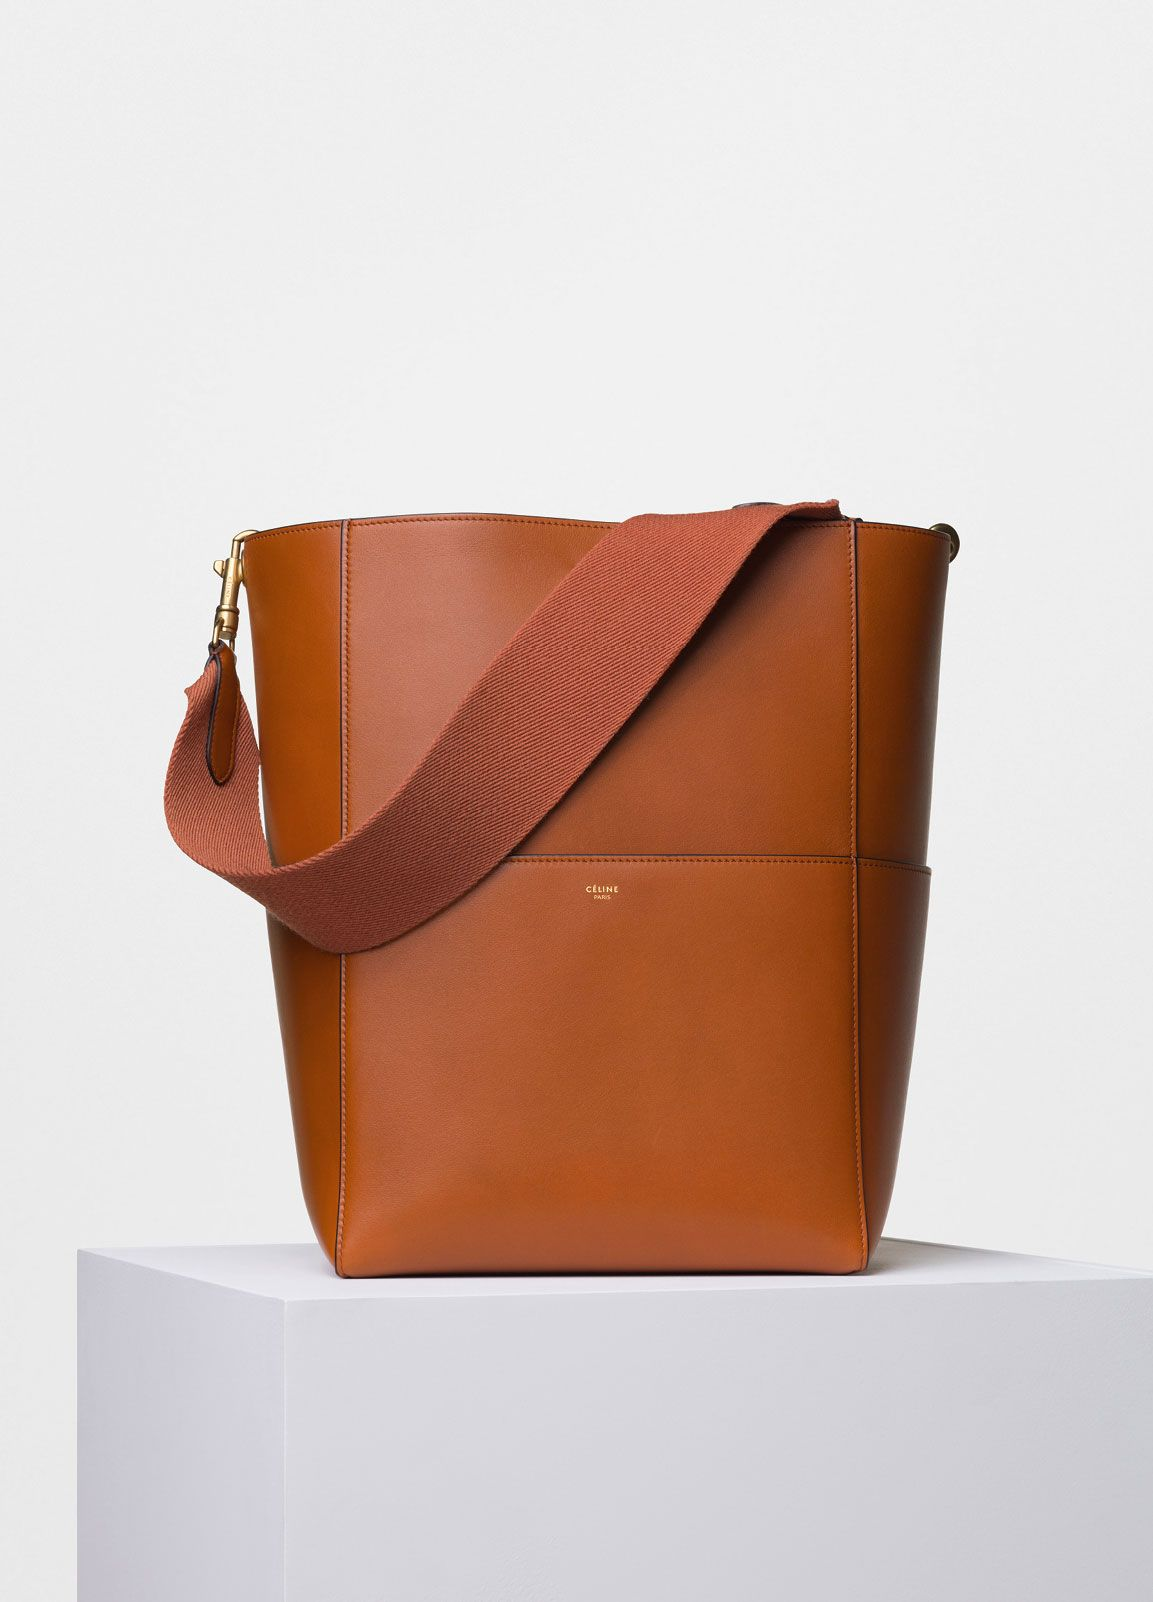 a811d39d94 Celine Summer 2016 Bag Collection Featuring Pillow Bags | Spotted Fashion